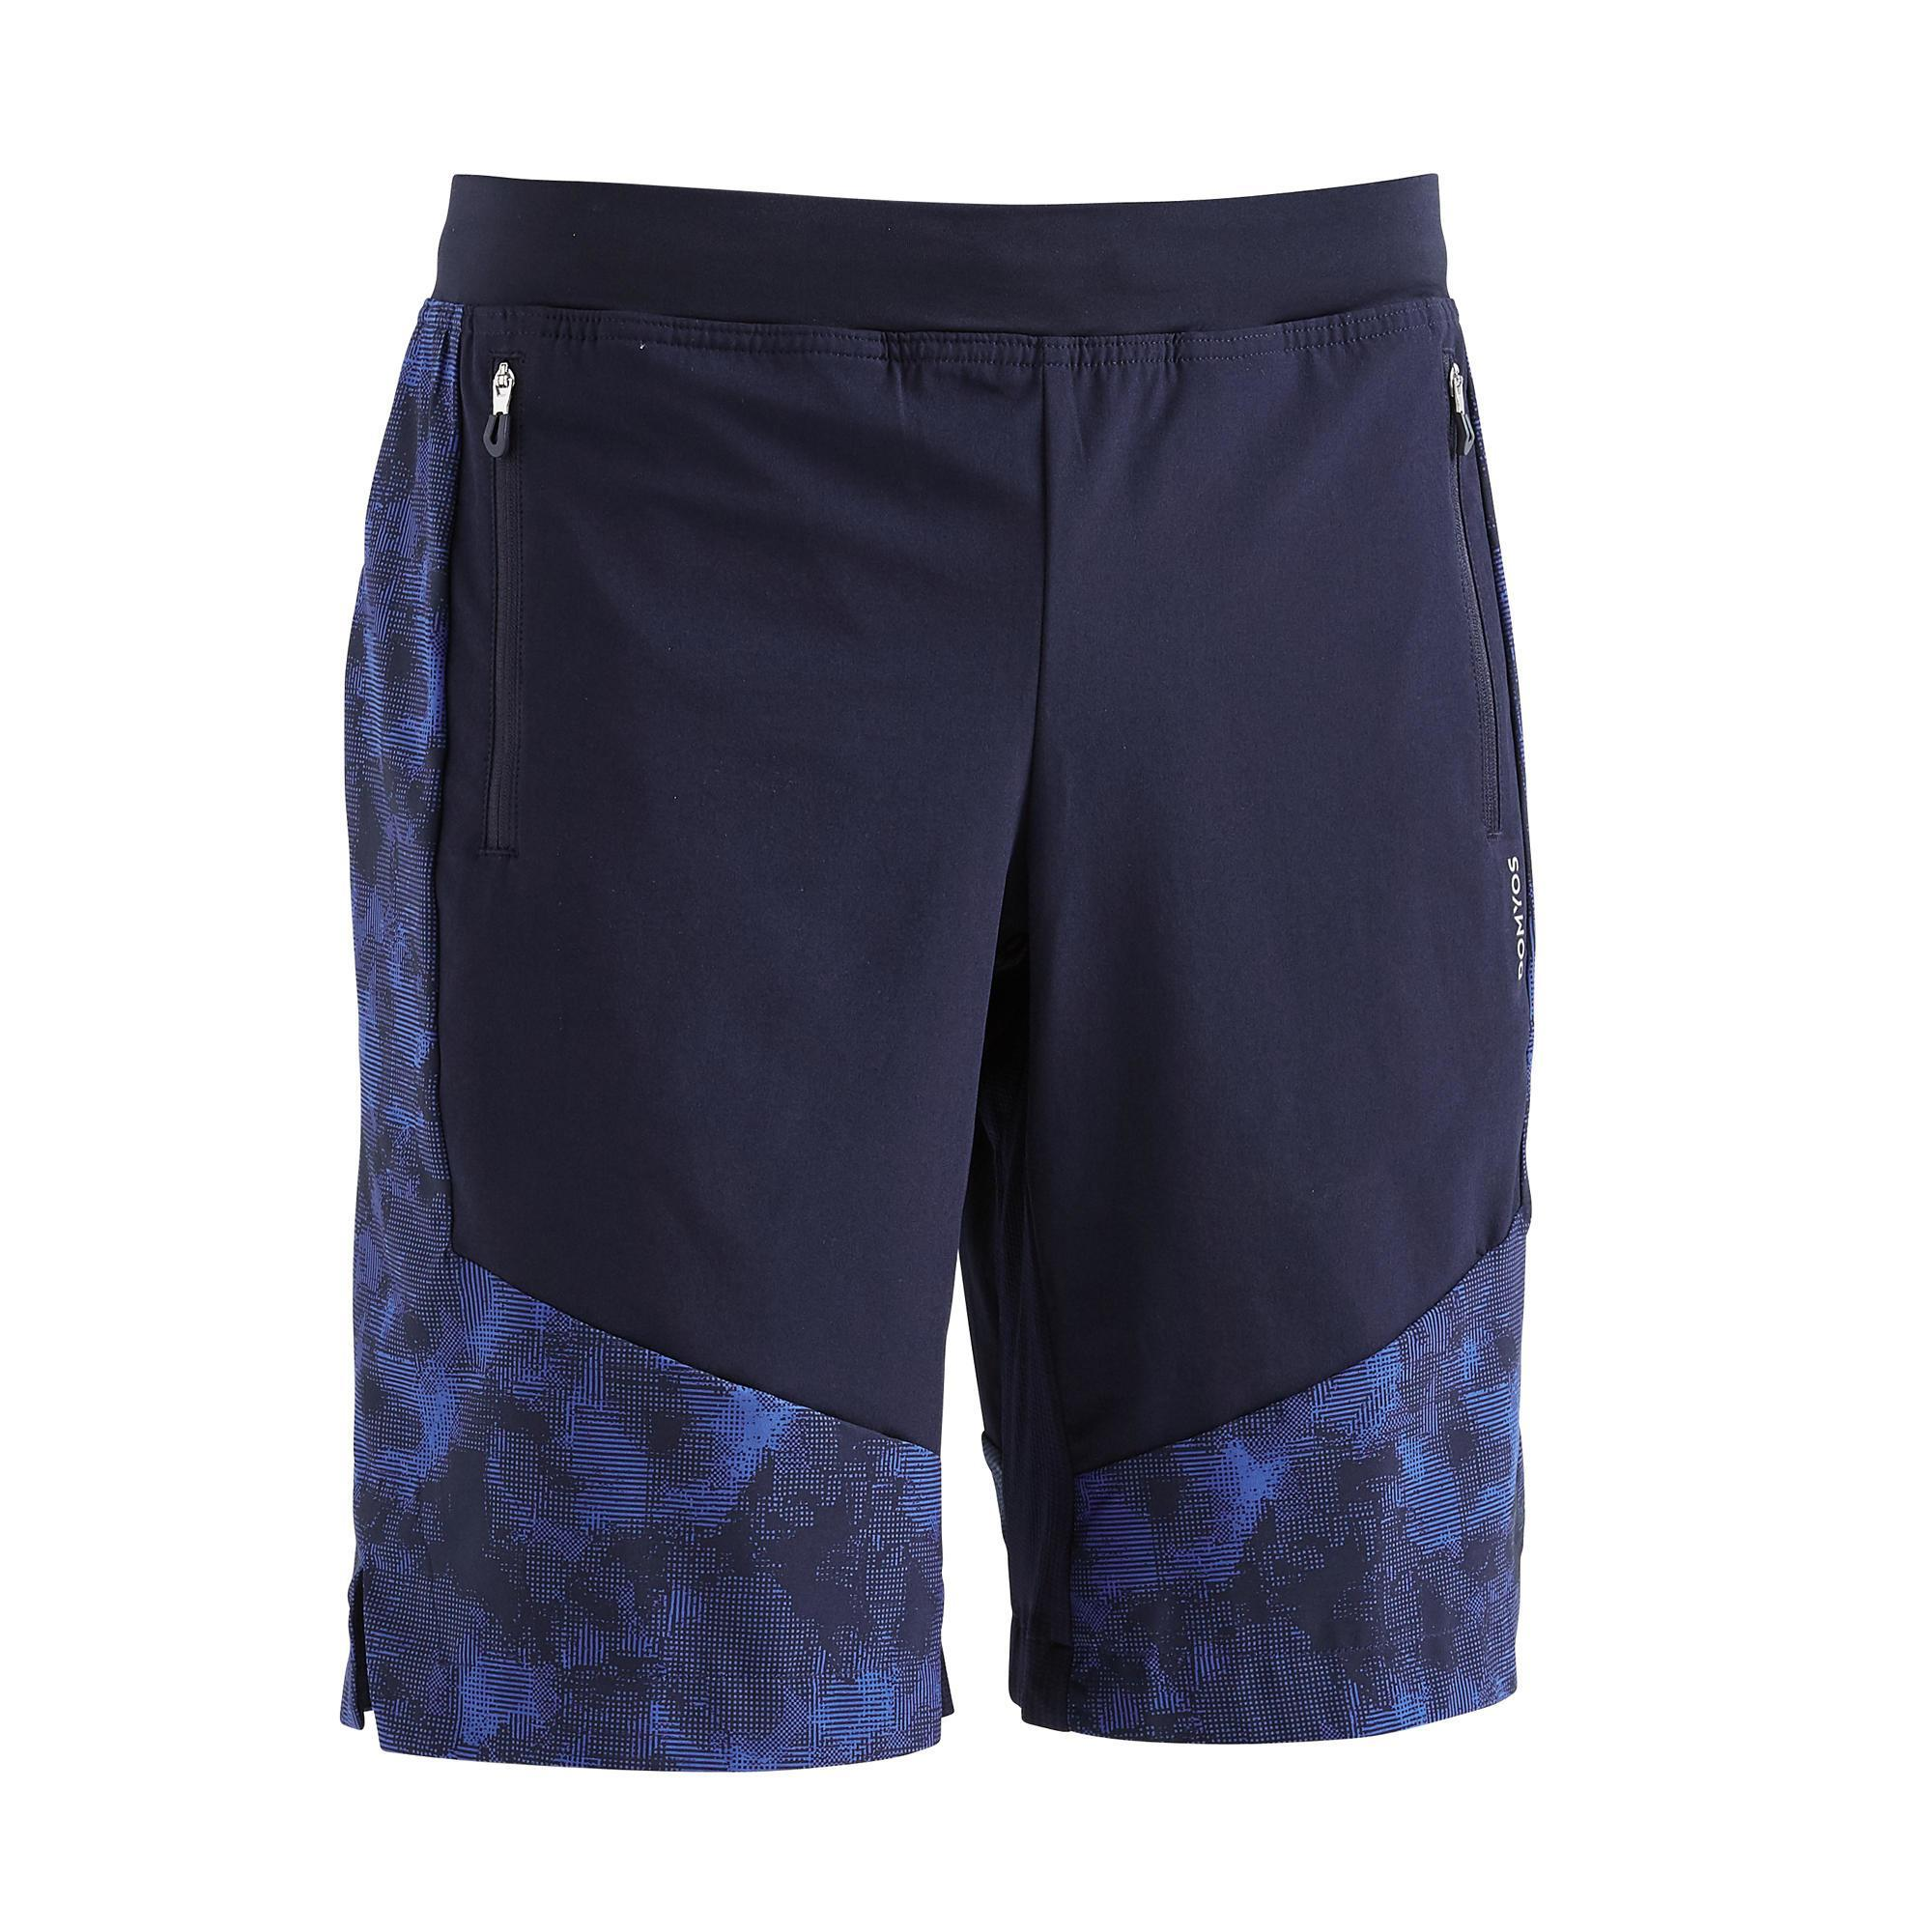 Shorts 2-in-1 Fitness Cardio Herren marineblau